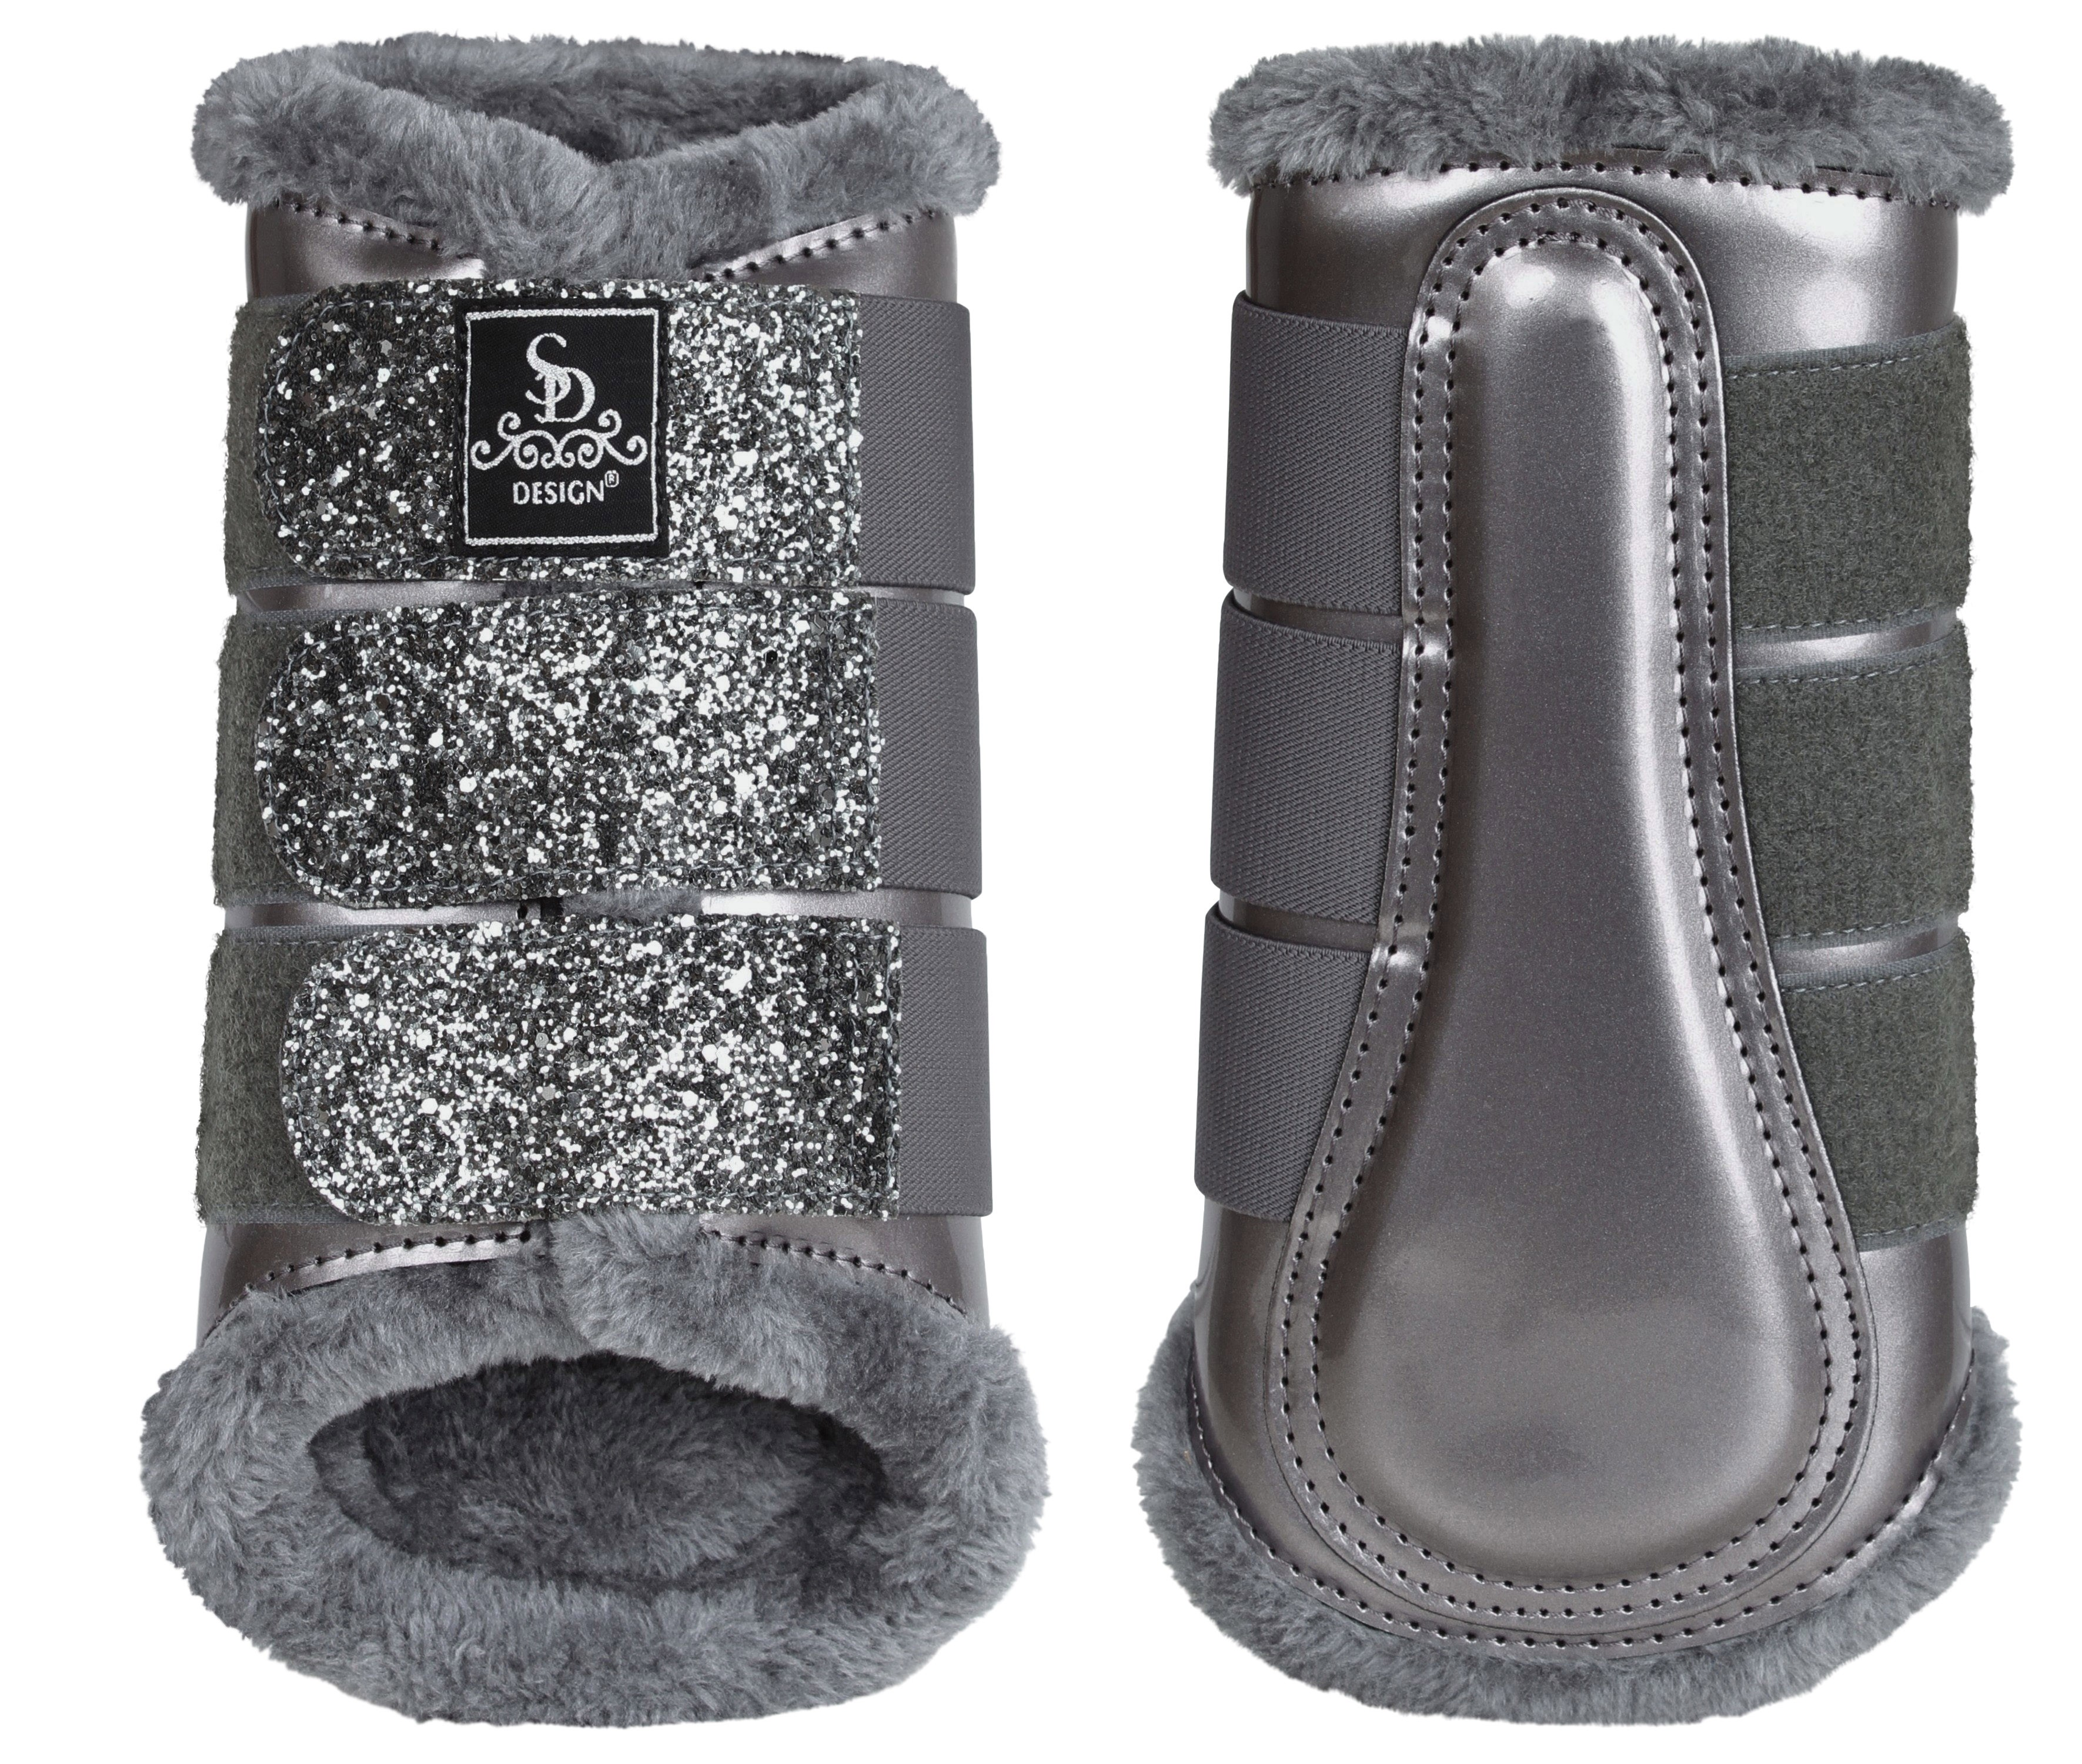 8284502930 SD® Glitter Dressage Boots in grey. O-237